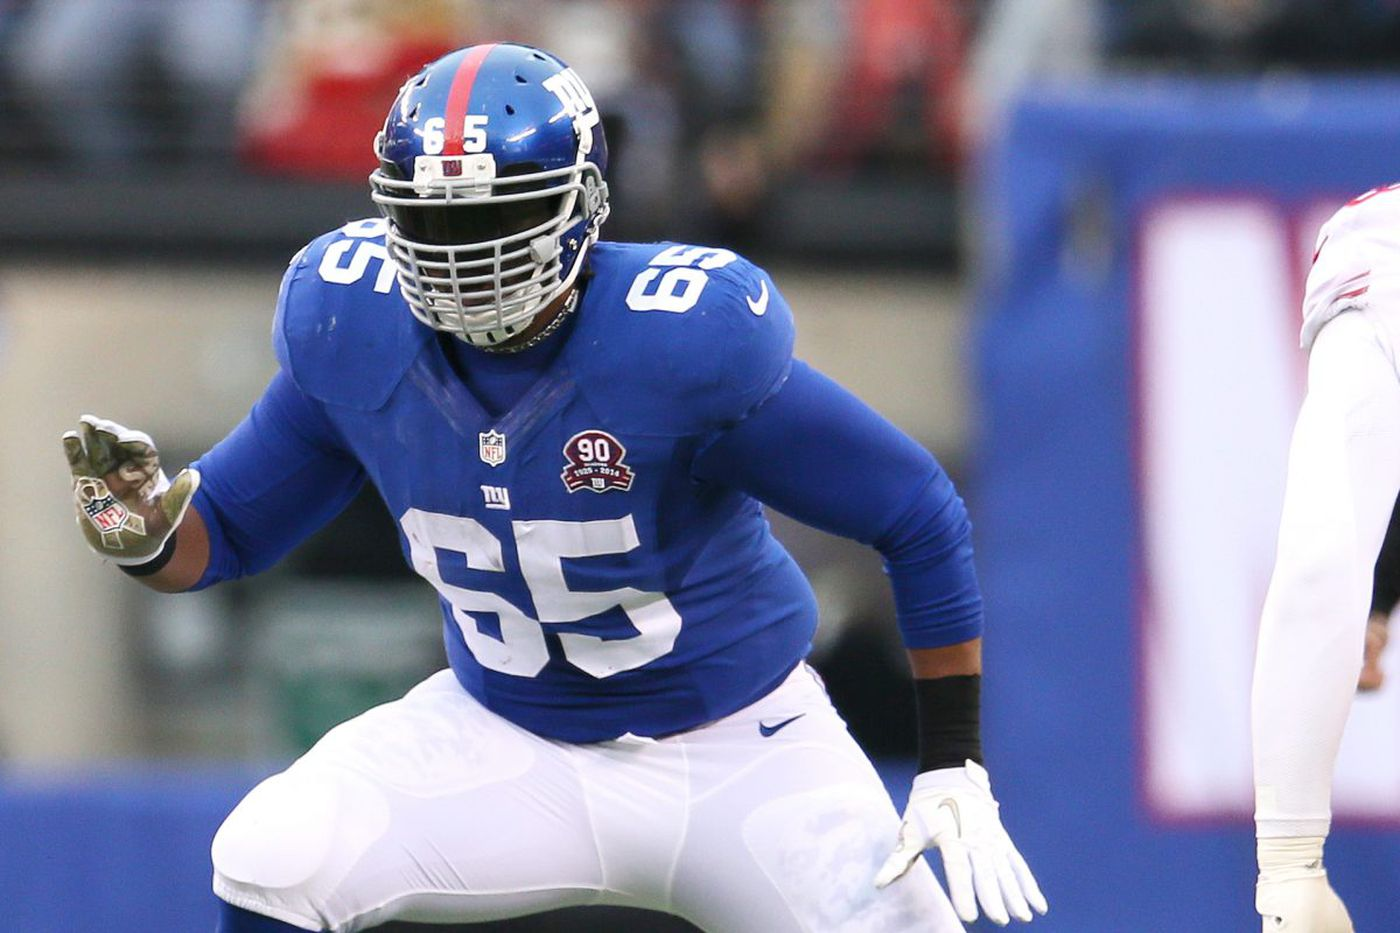 Eagles tackle depth problem by signing vet Will Beatty